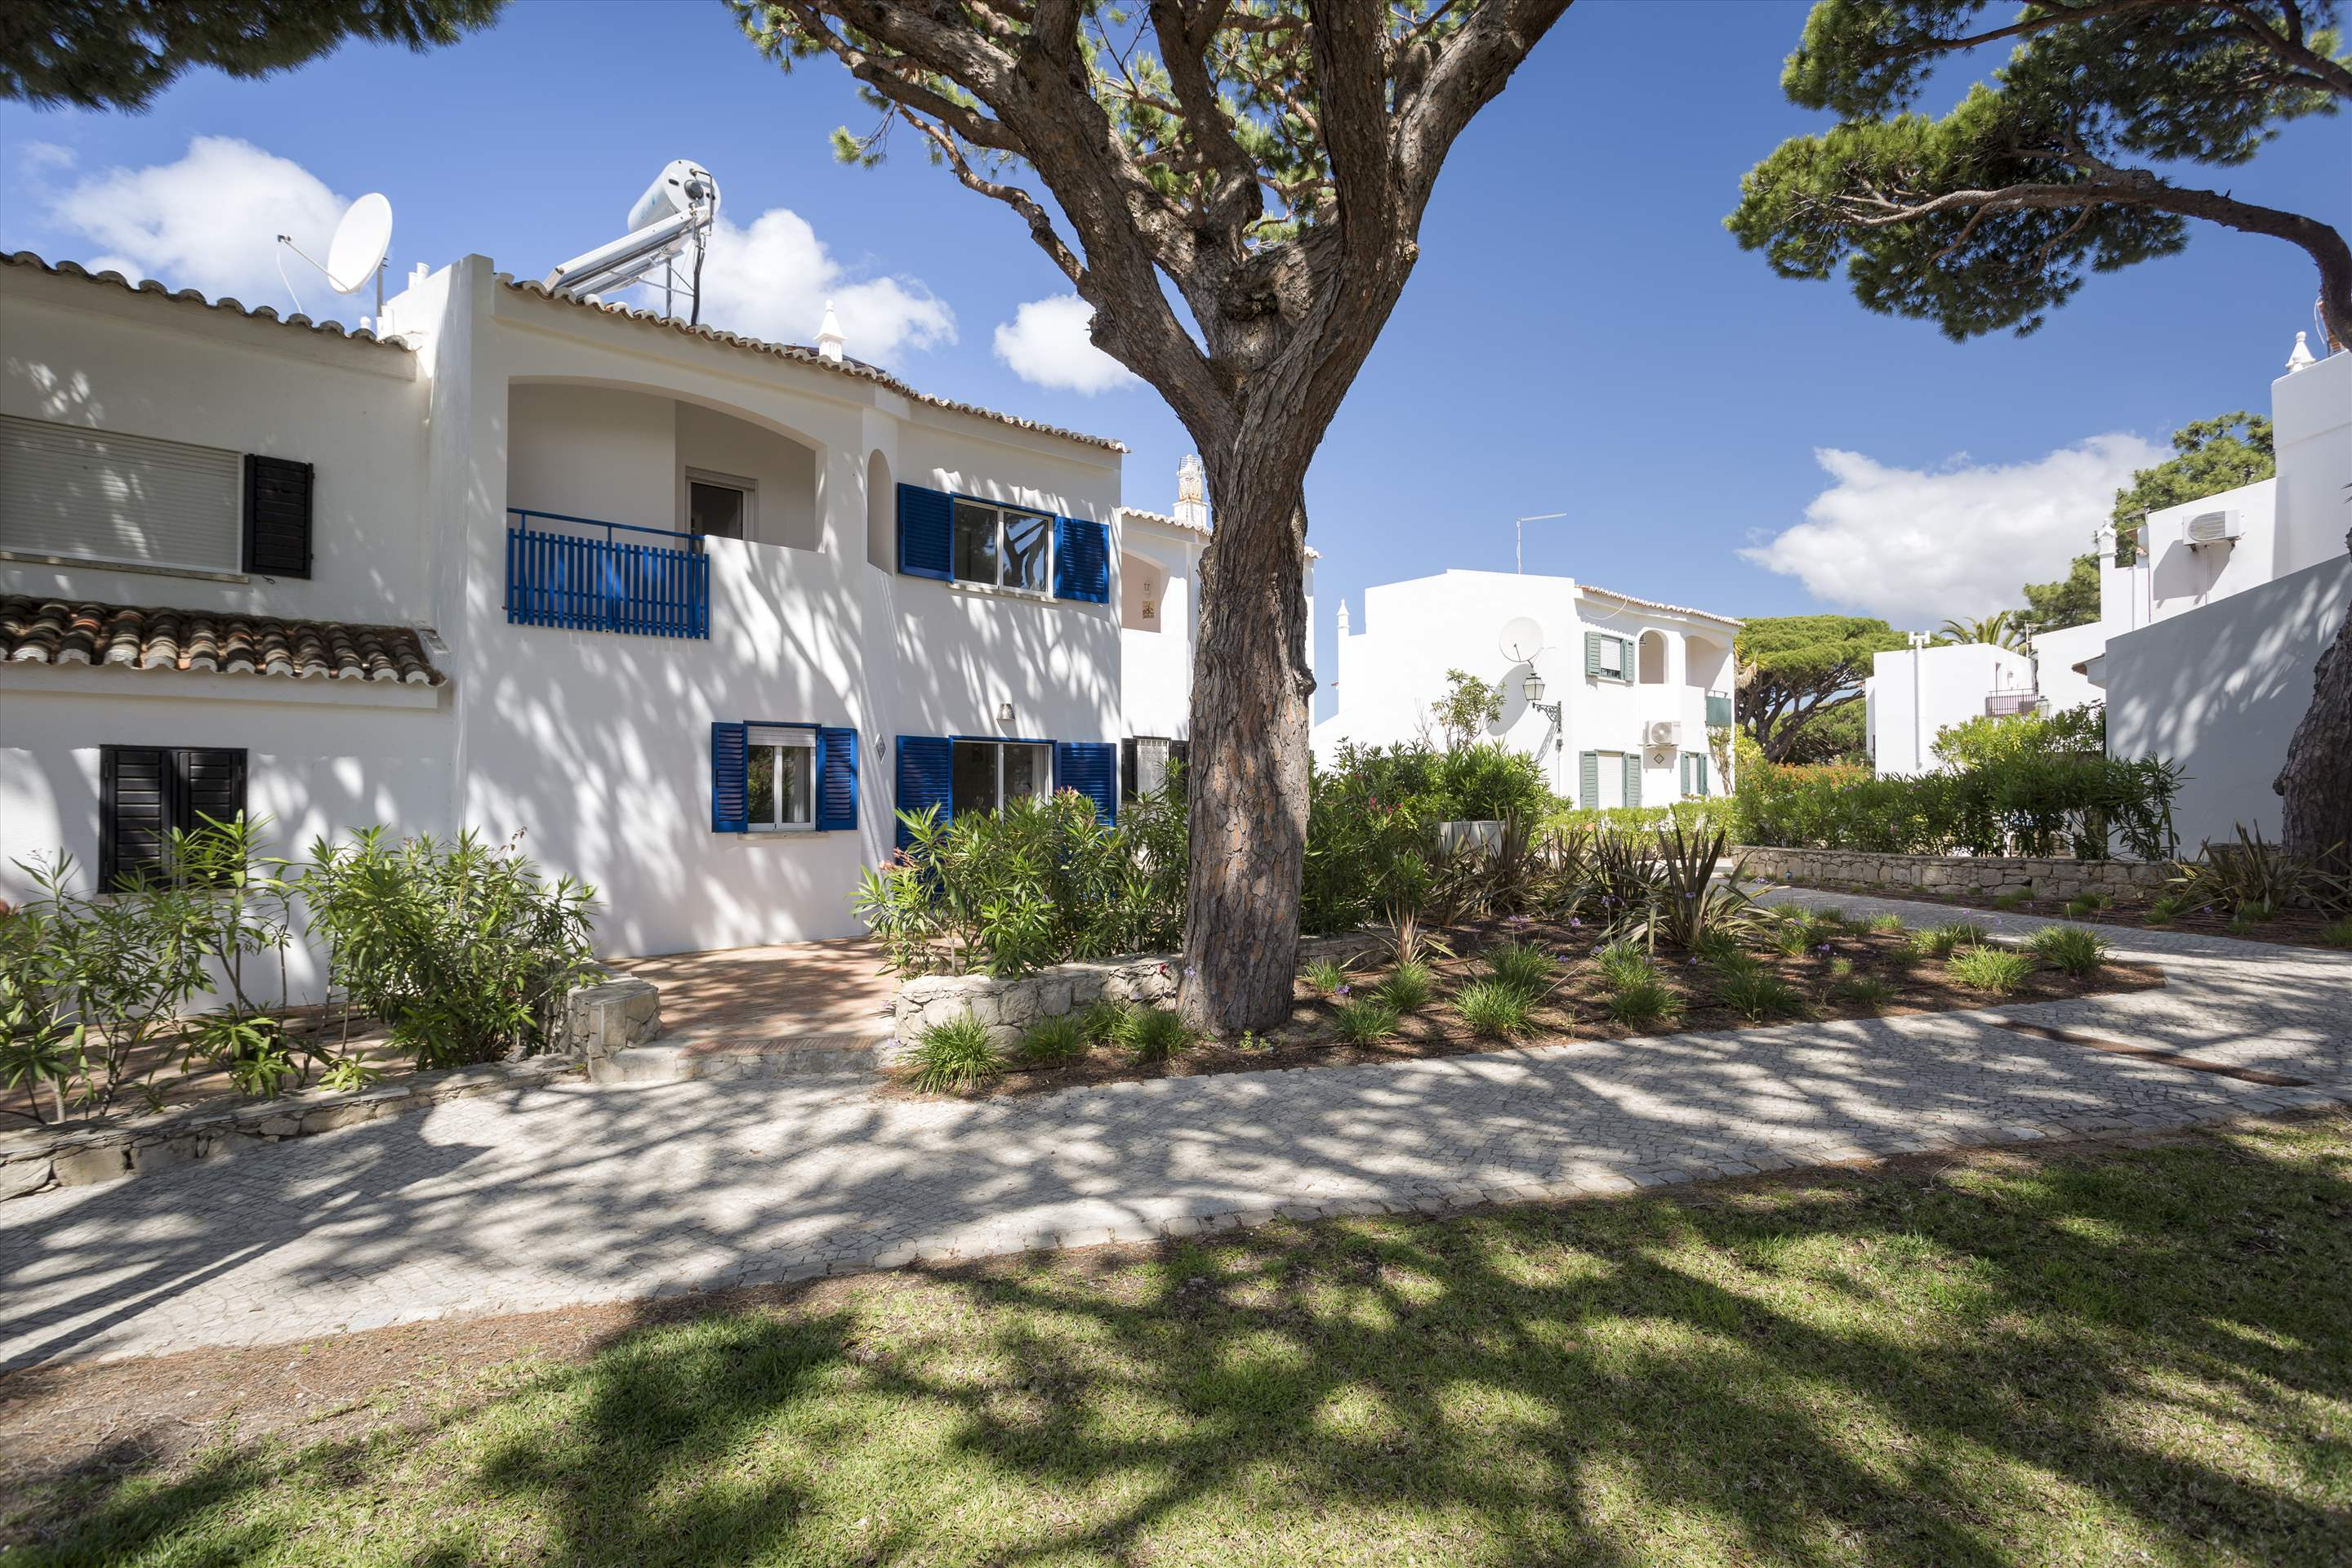 Townhouse Megan, 3 bedroom villa in Vale do Lobo, Algarve Photo #9